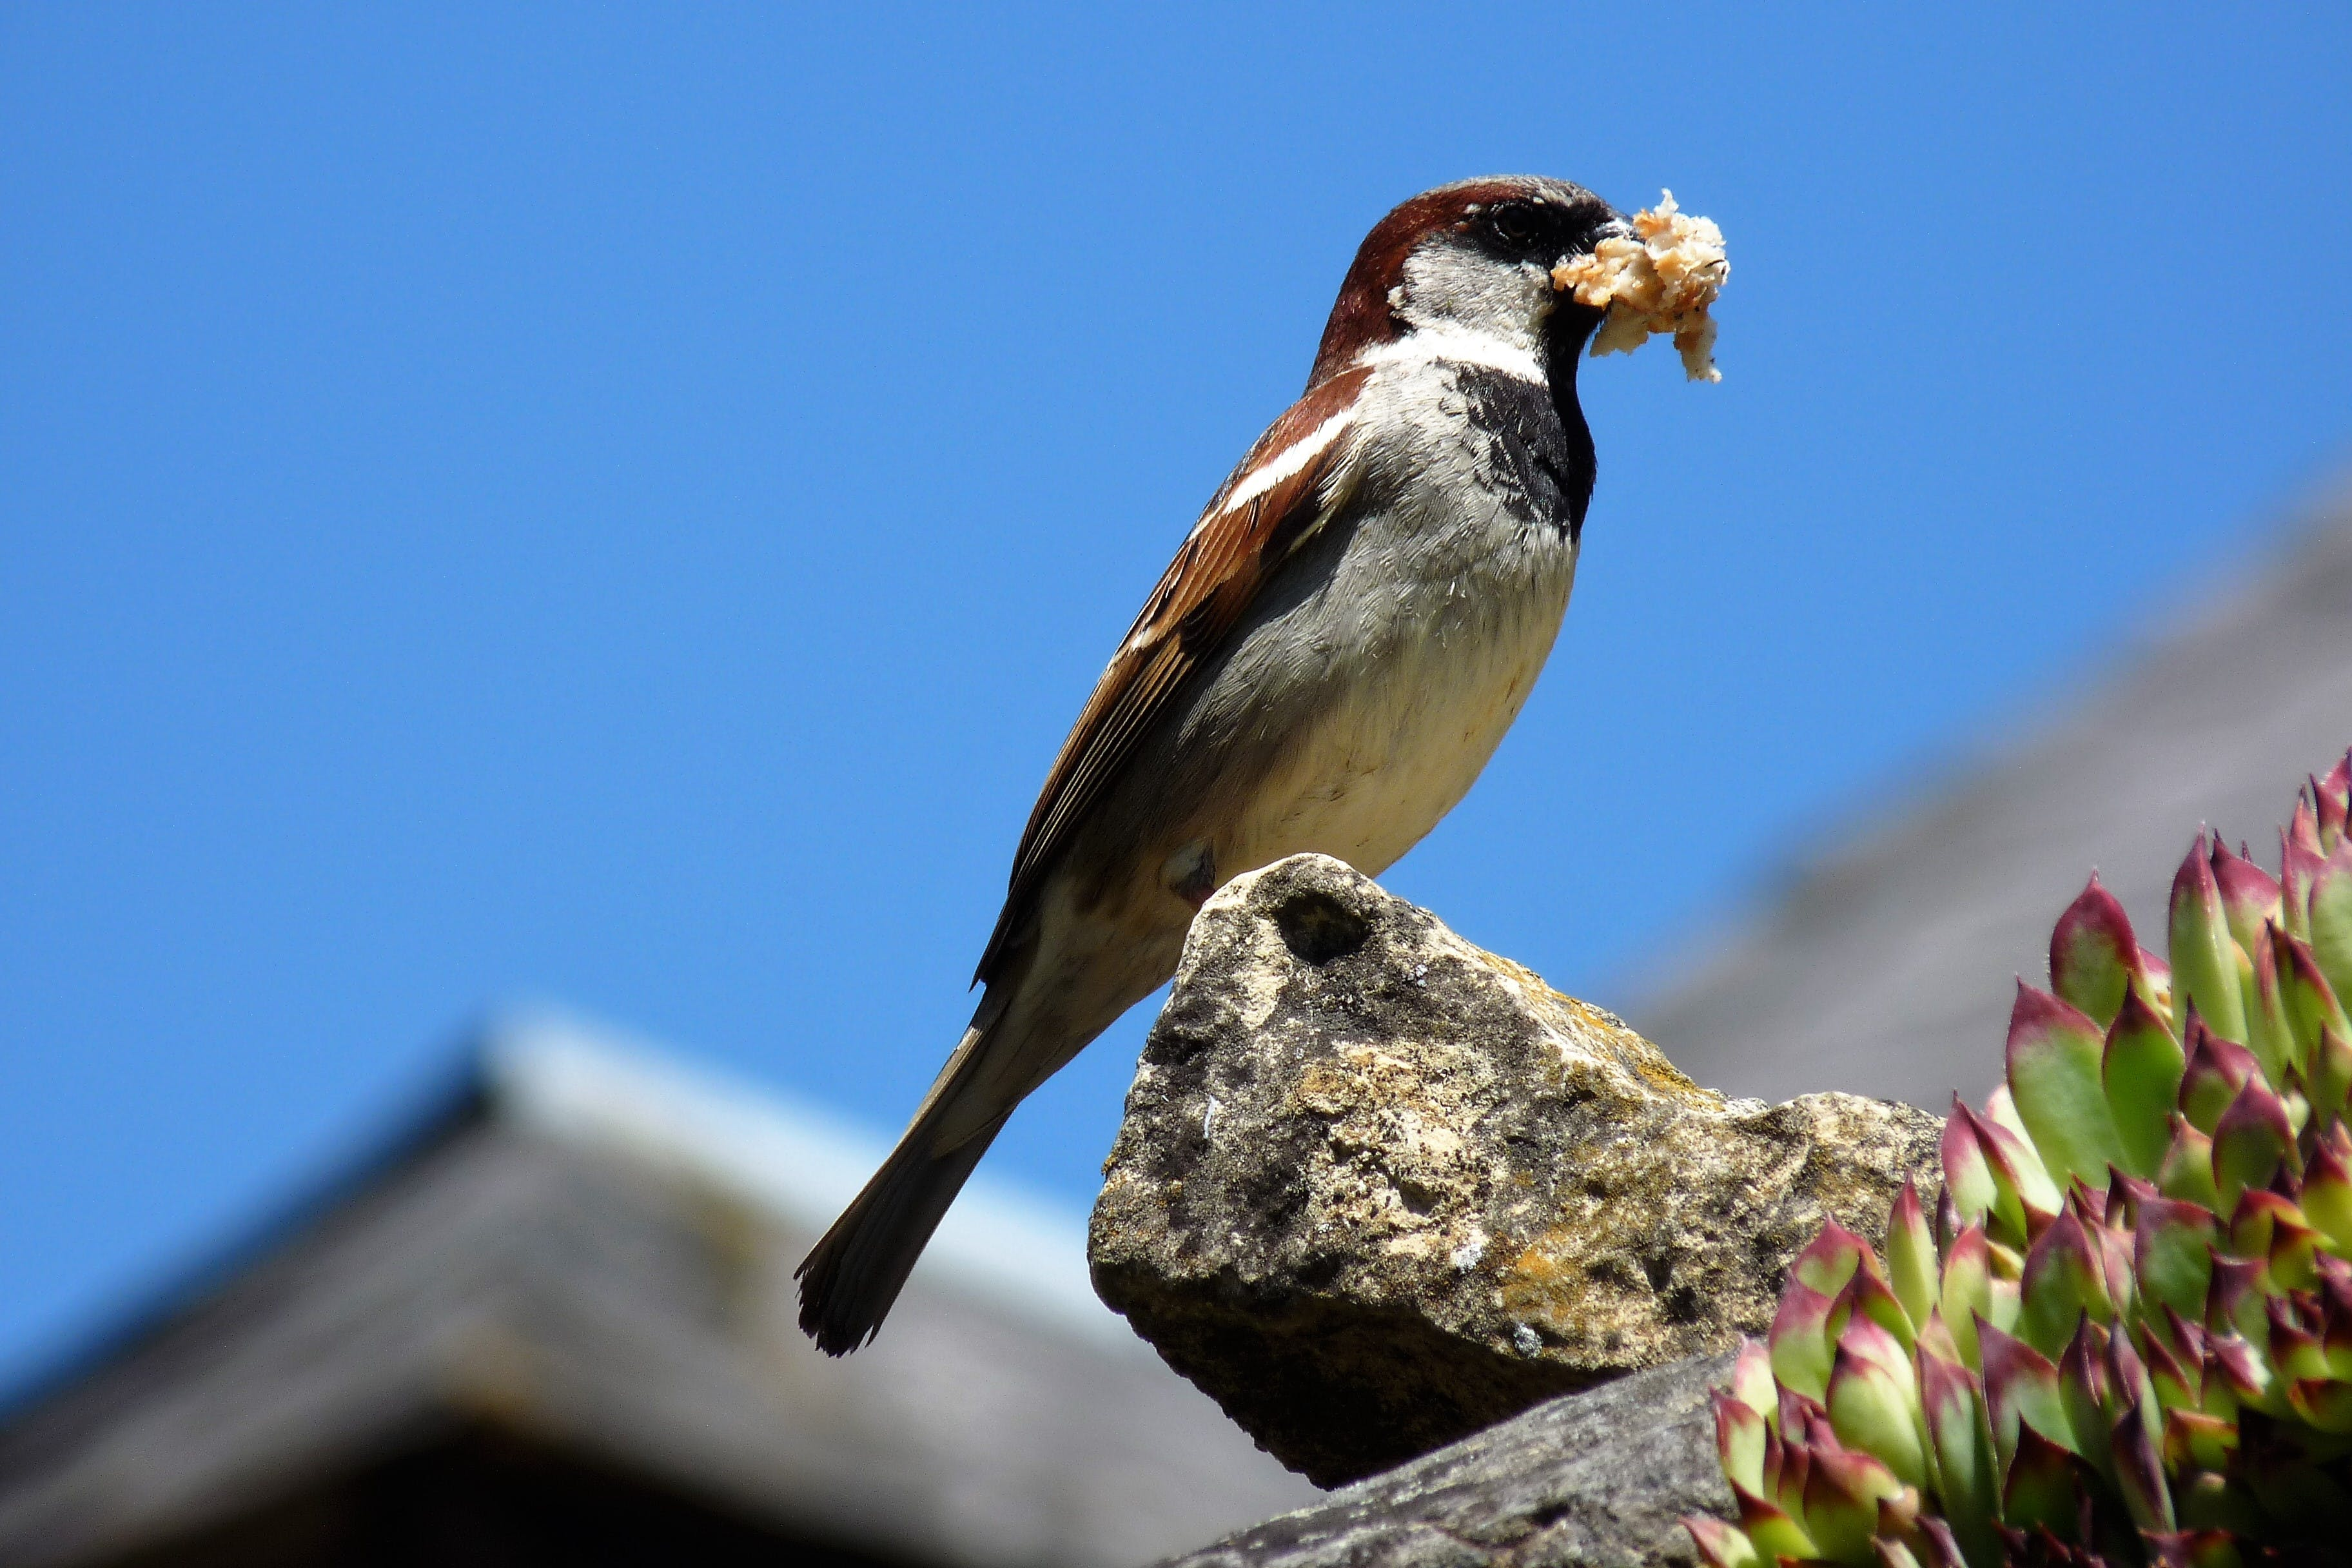 Free stock photo of blue sky, close-up view, macro photography, sparrow eating bread pièce